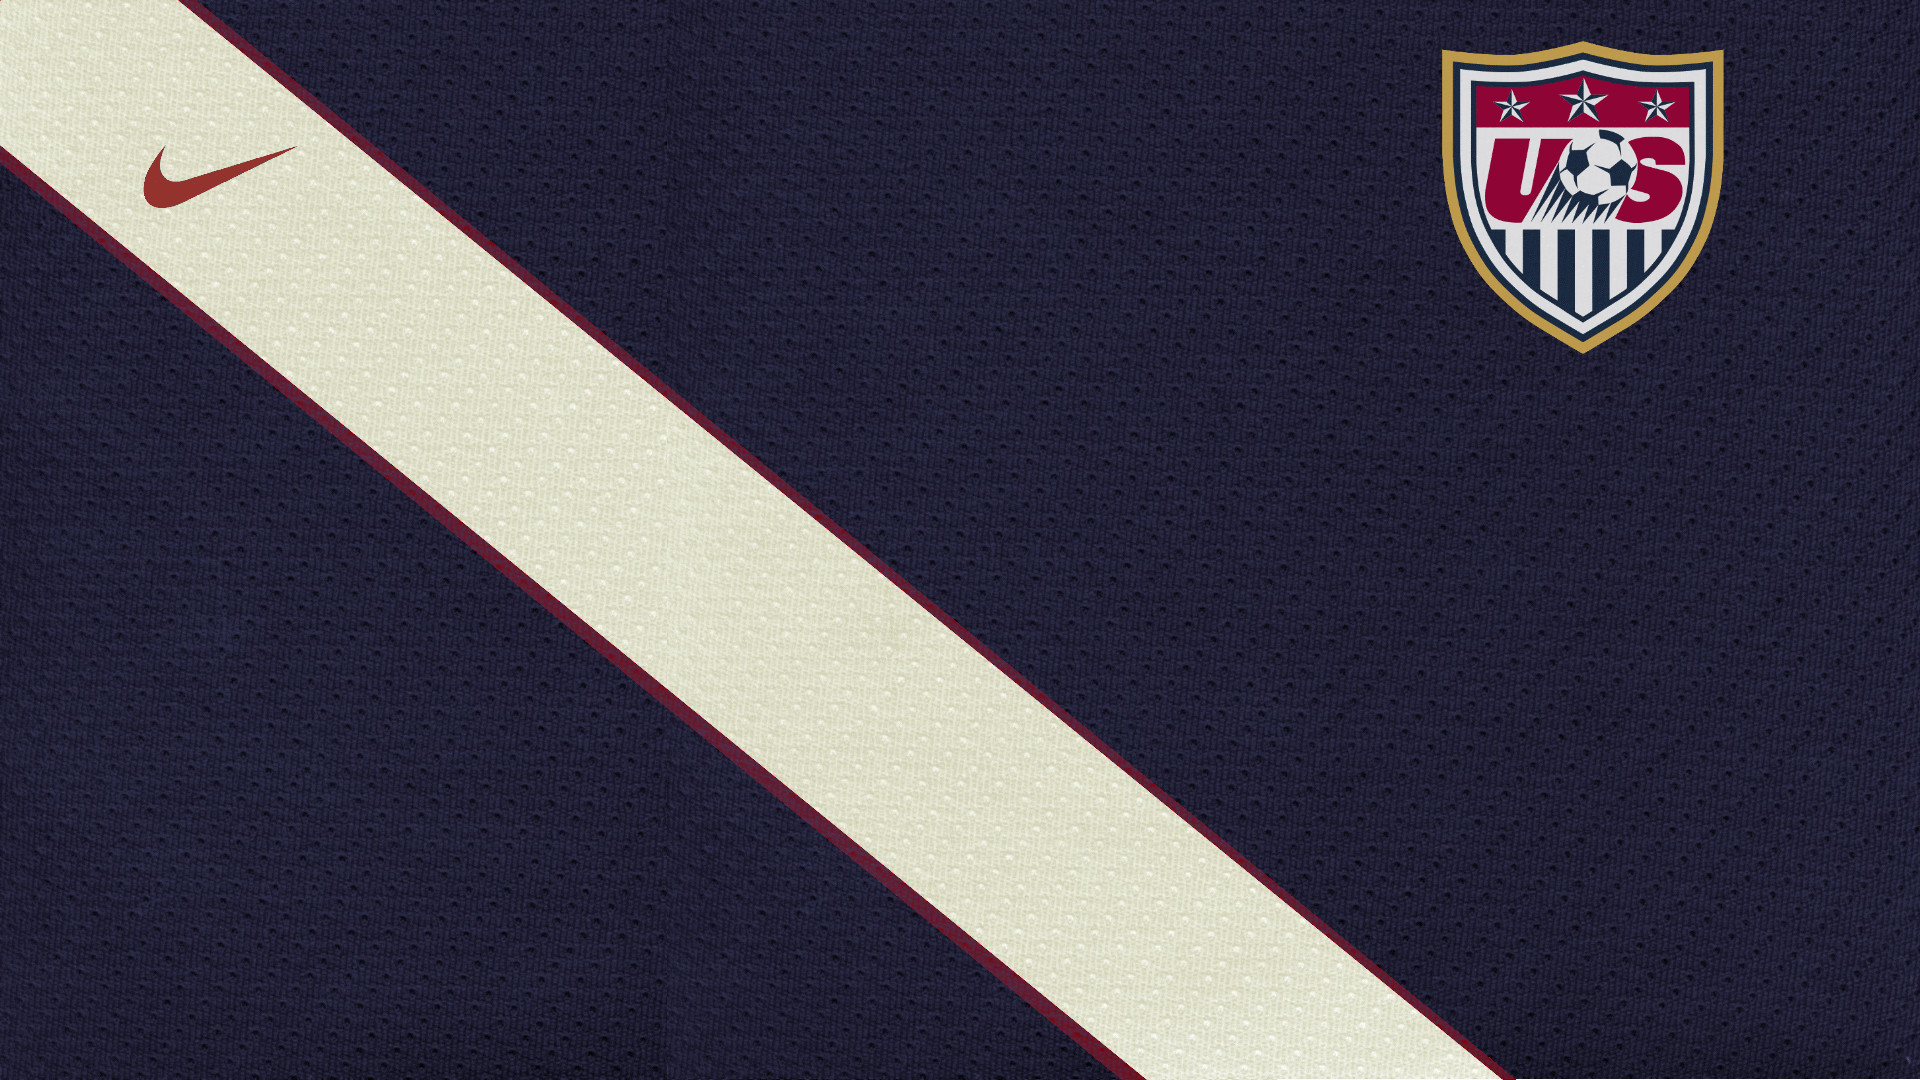 United States Football Wallpaper, Backgrounds and Picture.